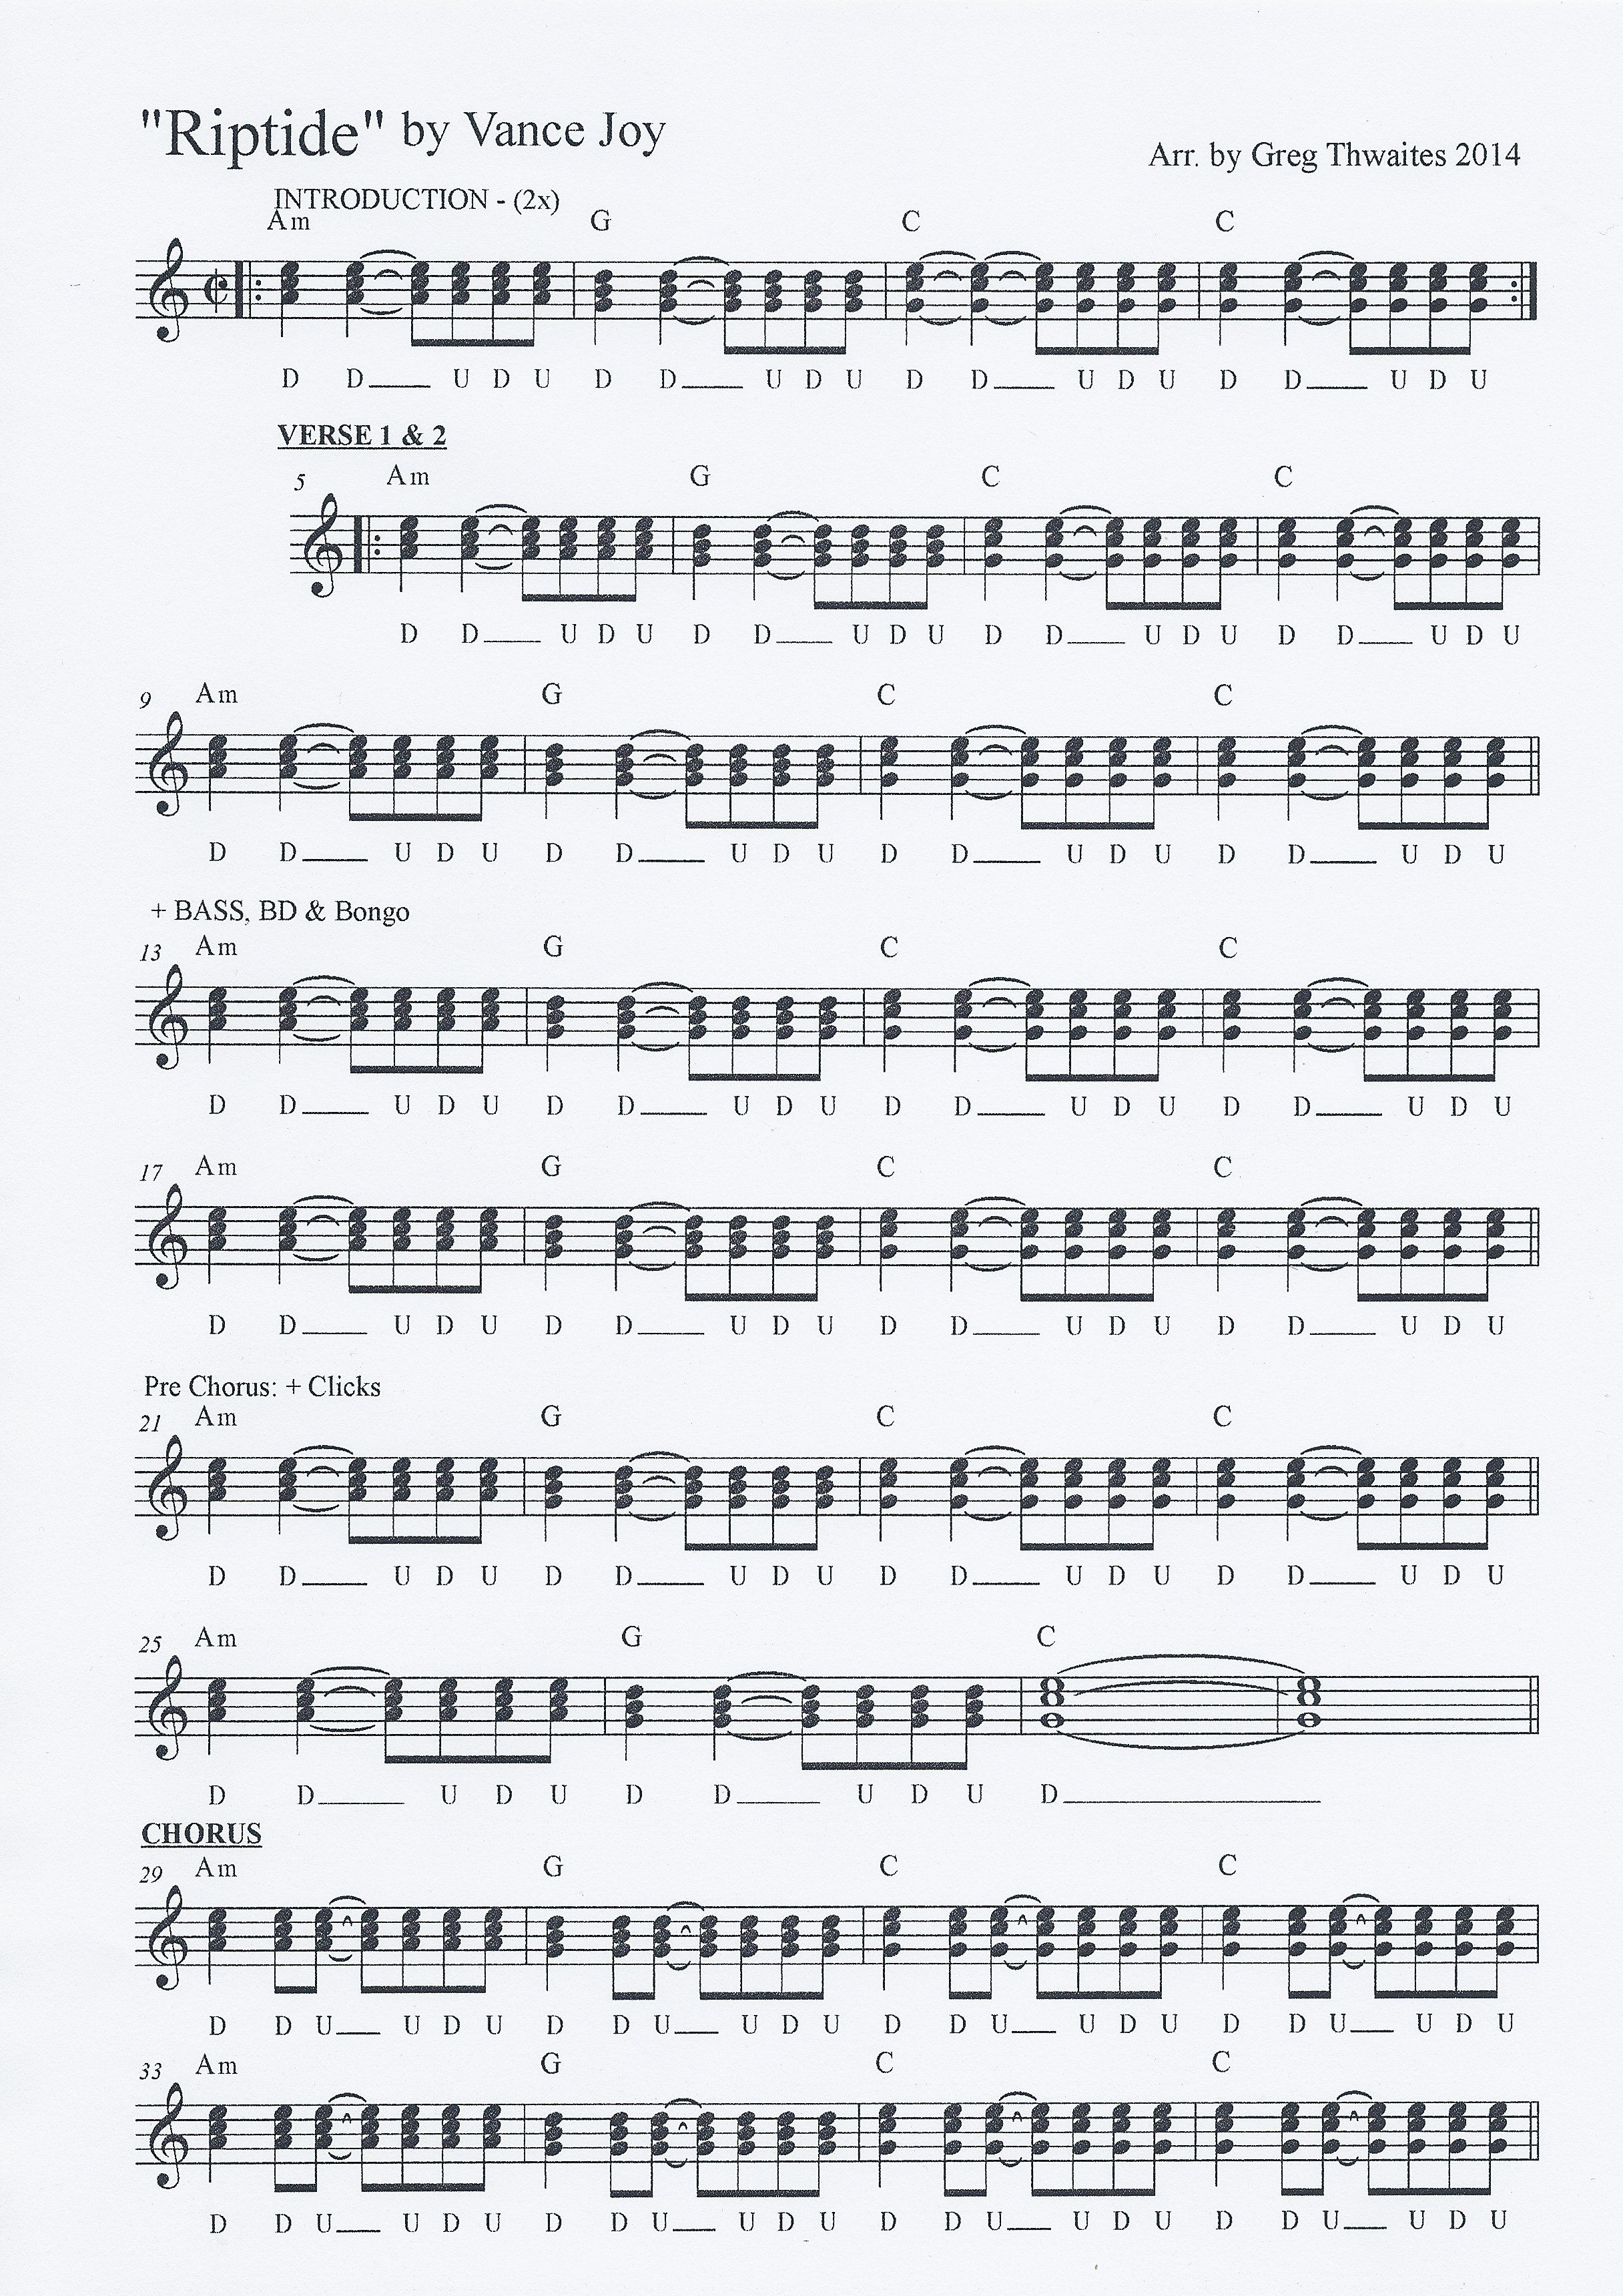 Riptide Piano Sheet Music With Letters Poemsview